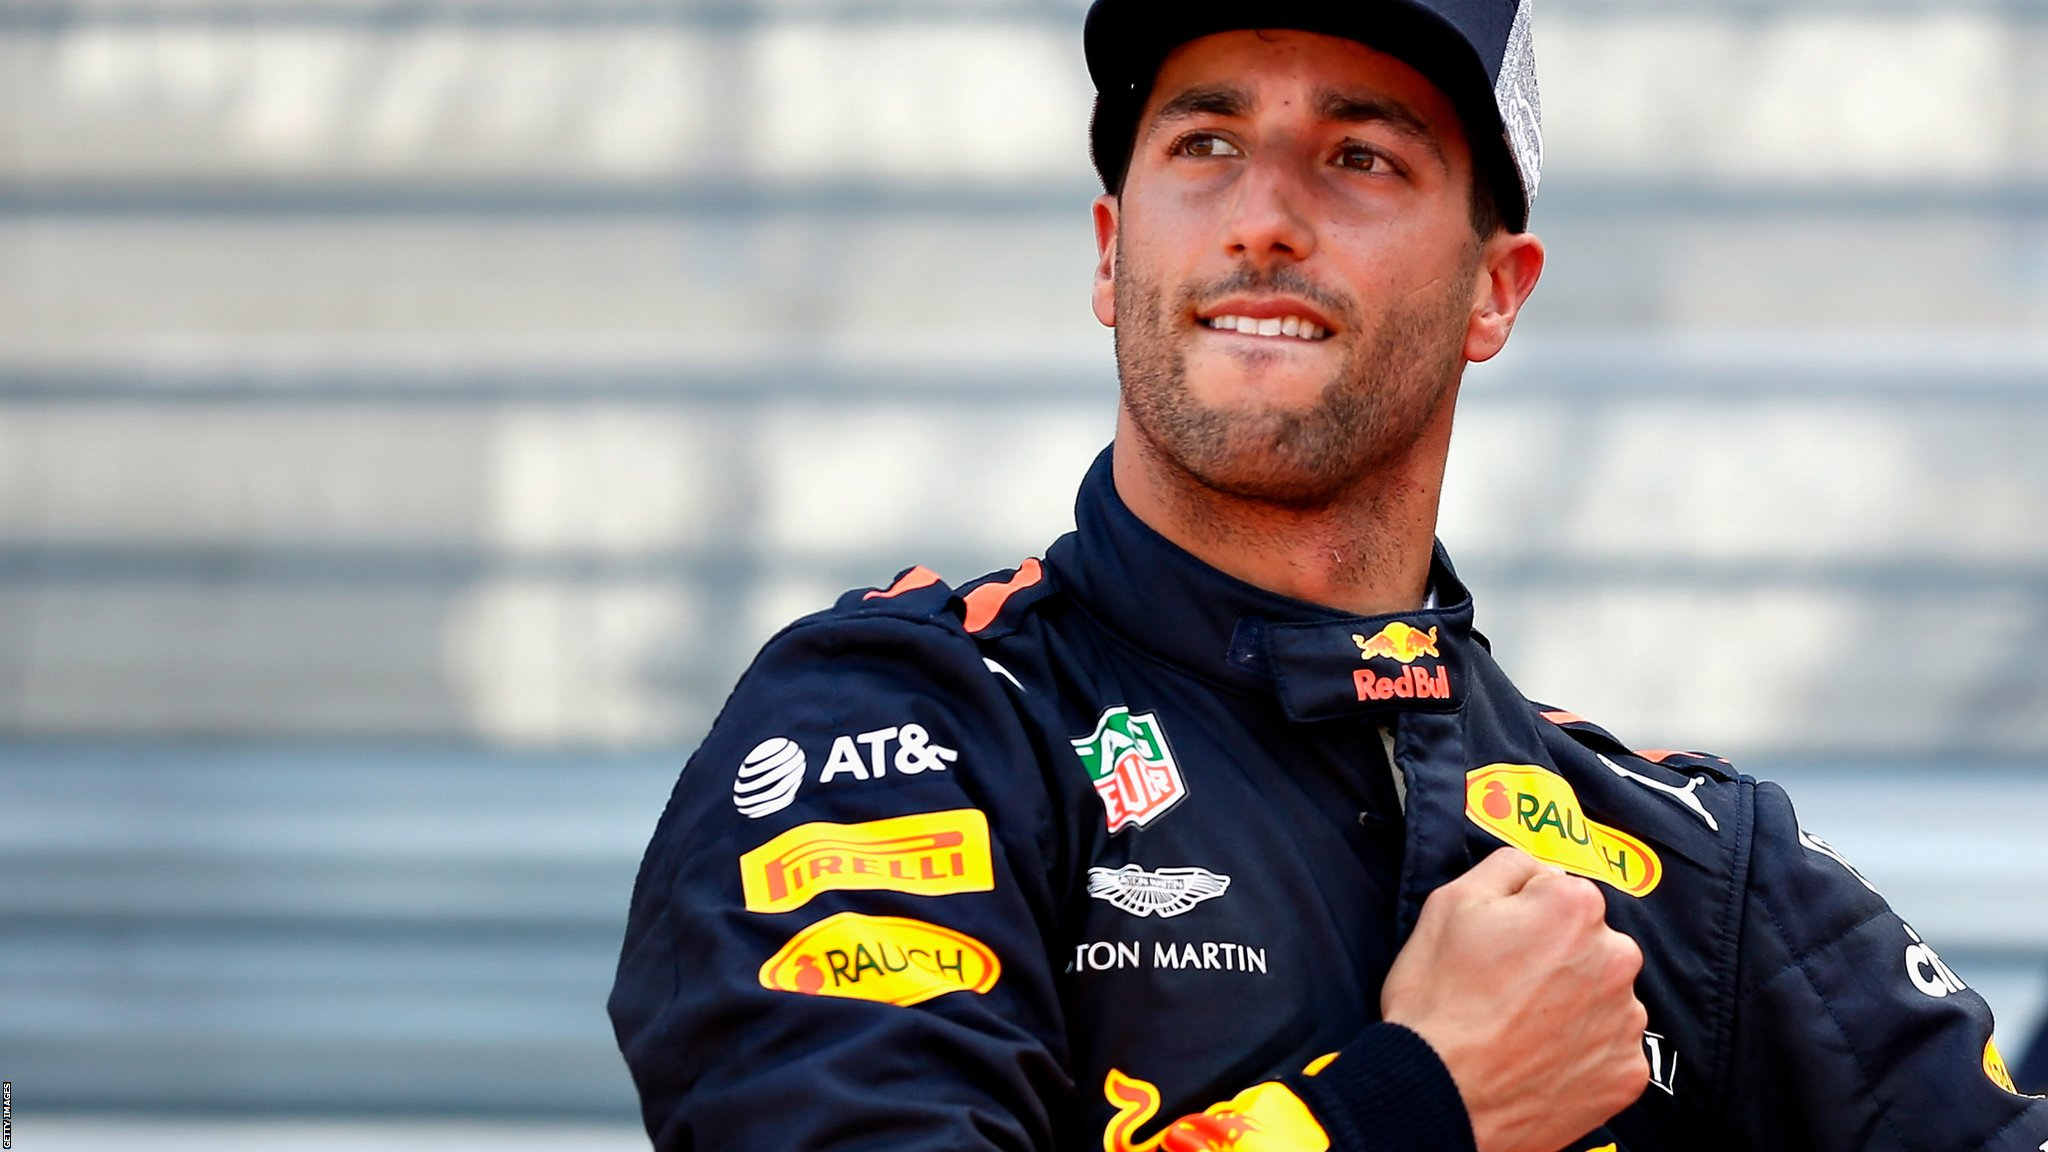 Monaco Grand Prix: Red Bull's Daniel Ricciardo powers to dominant pole